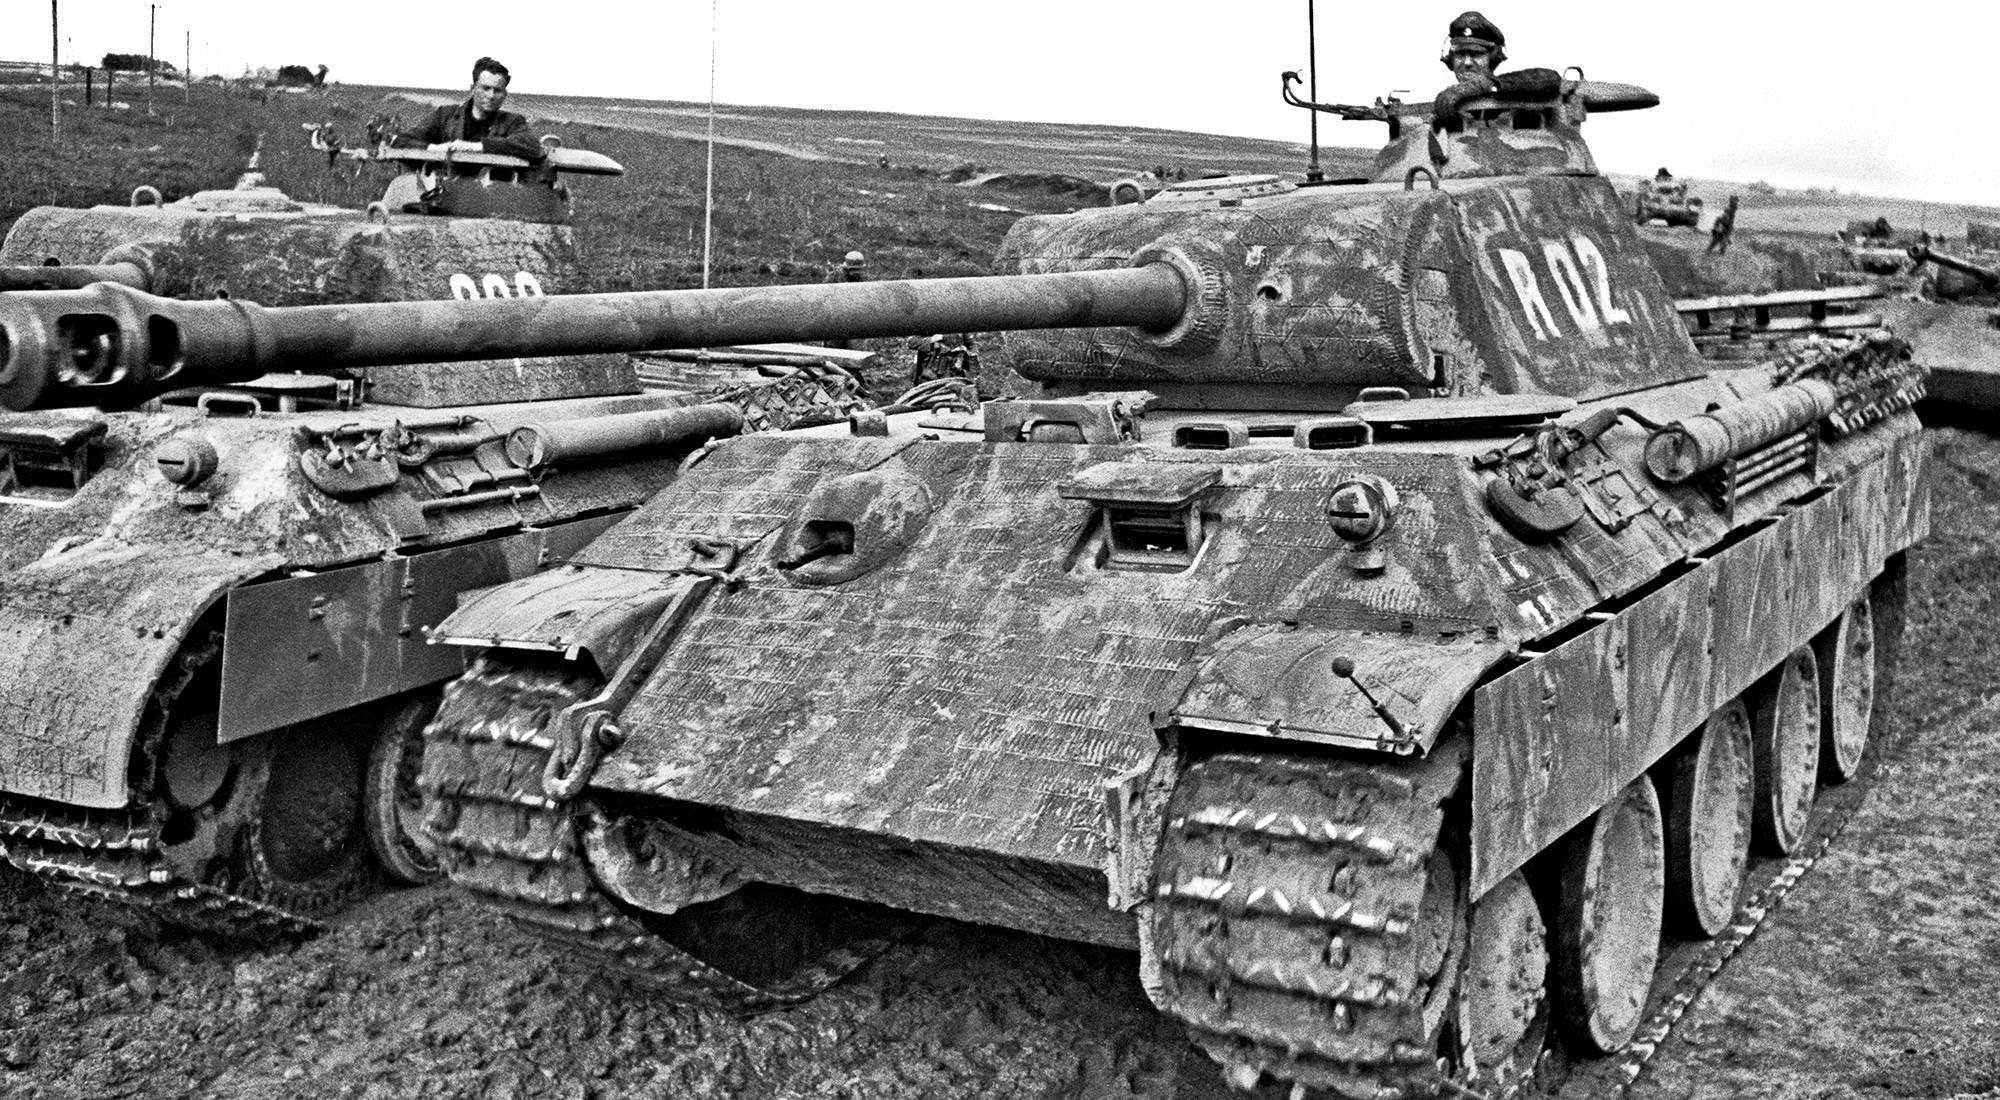 A crew man from Nicolussi-Leck's Panther 800 watches as Muhlenkamp's Panther R02 rumbles past Kovel, 1944.